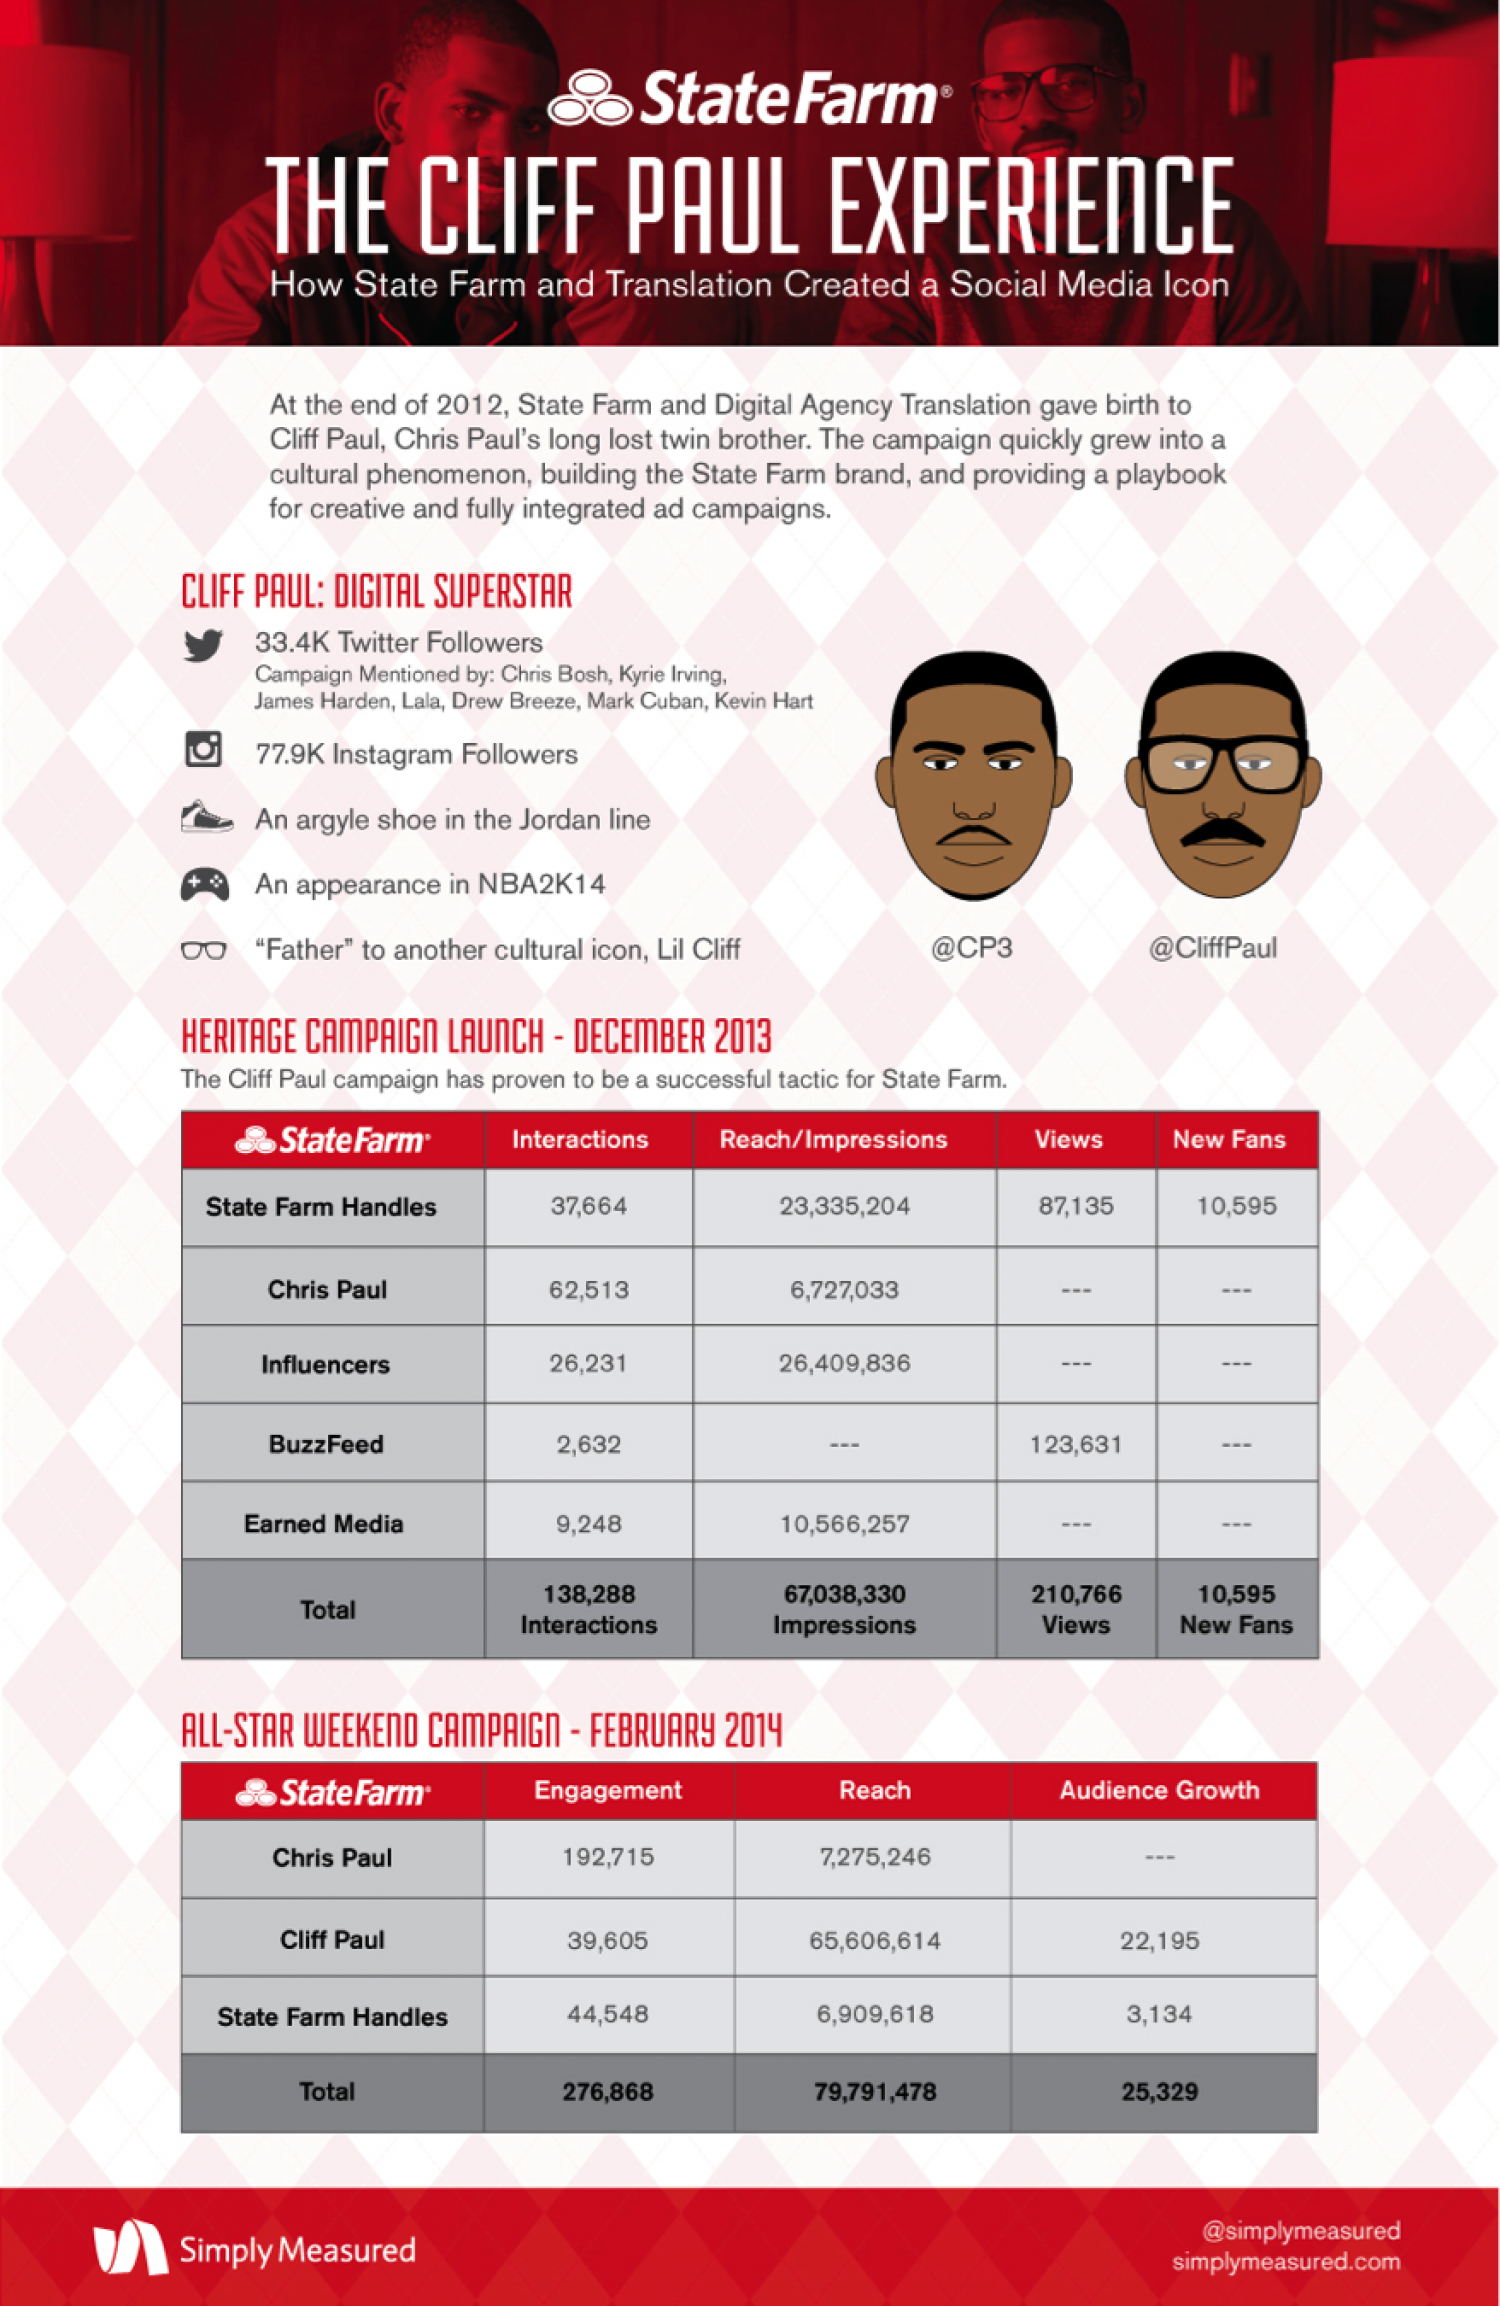 How State Farm and Social Media Breathed Life Into Cliff Paul Infographic